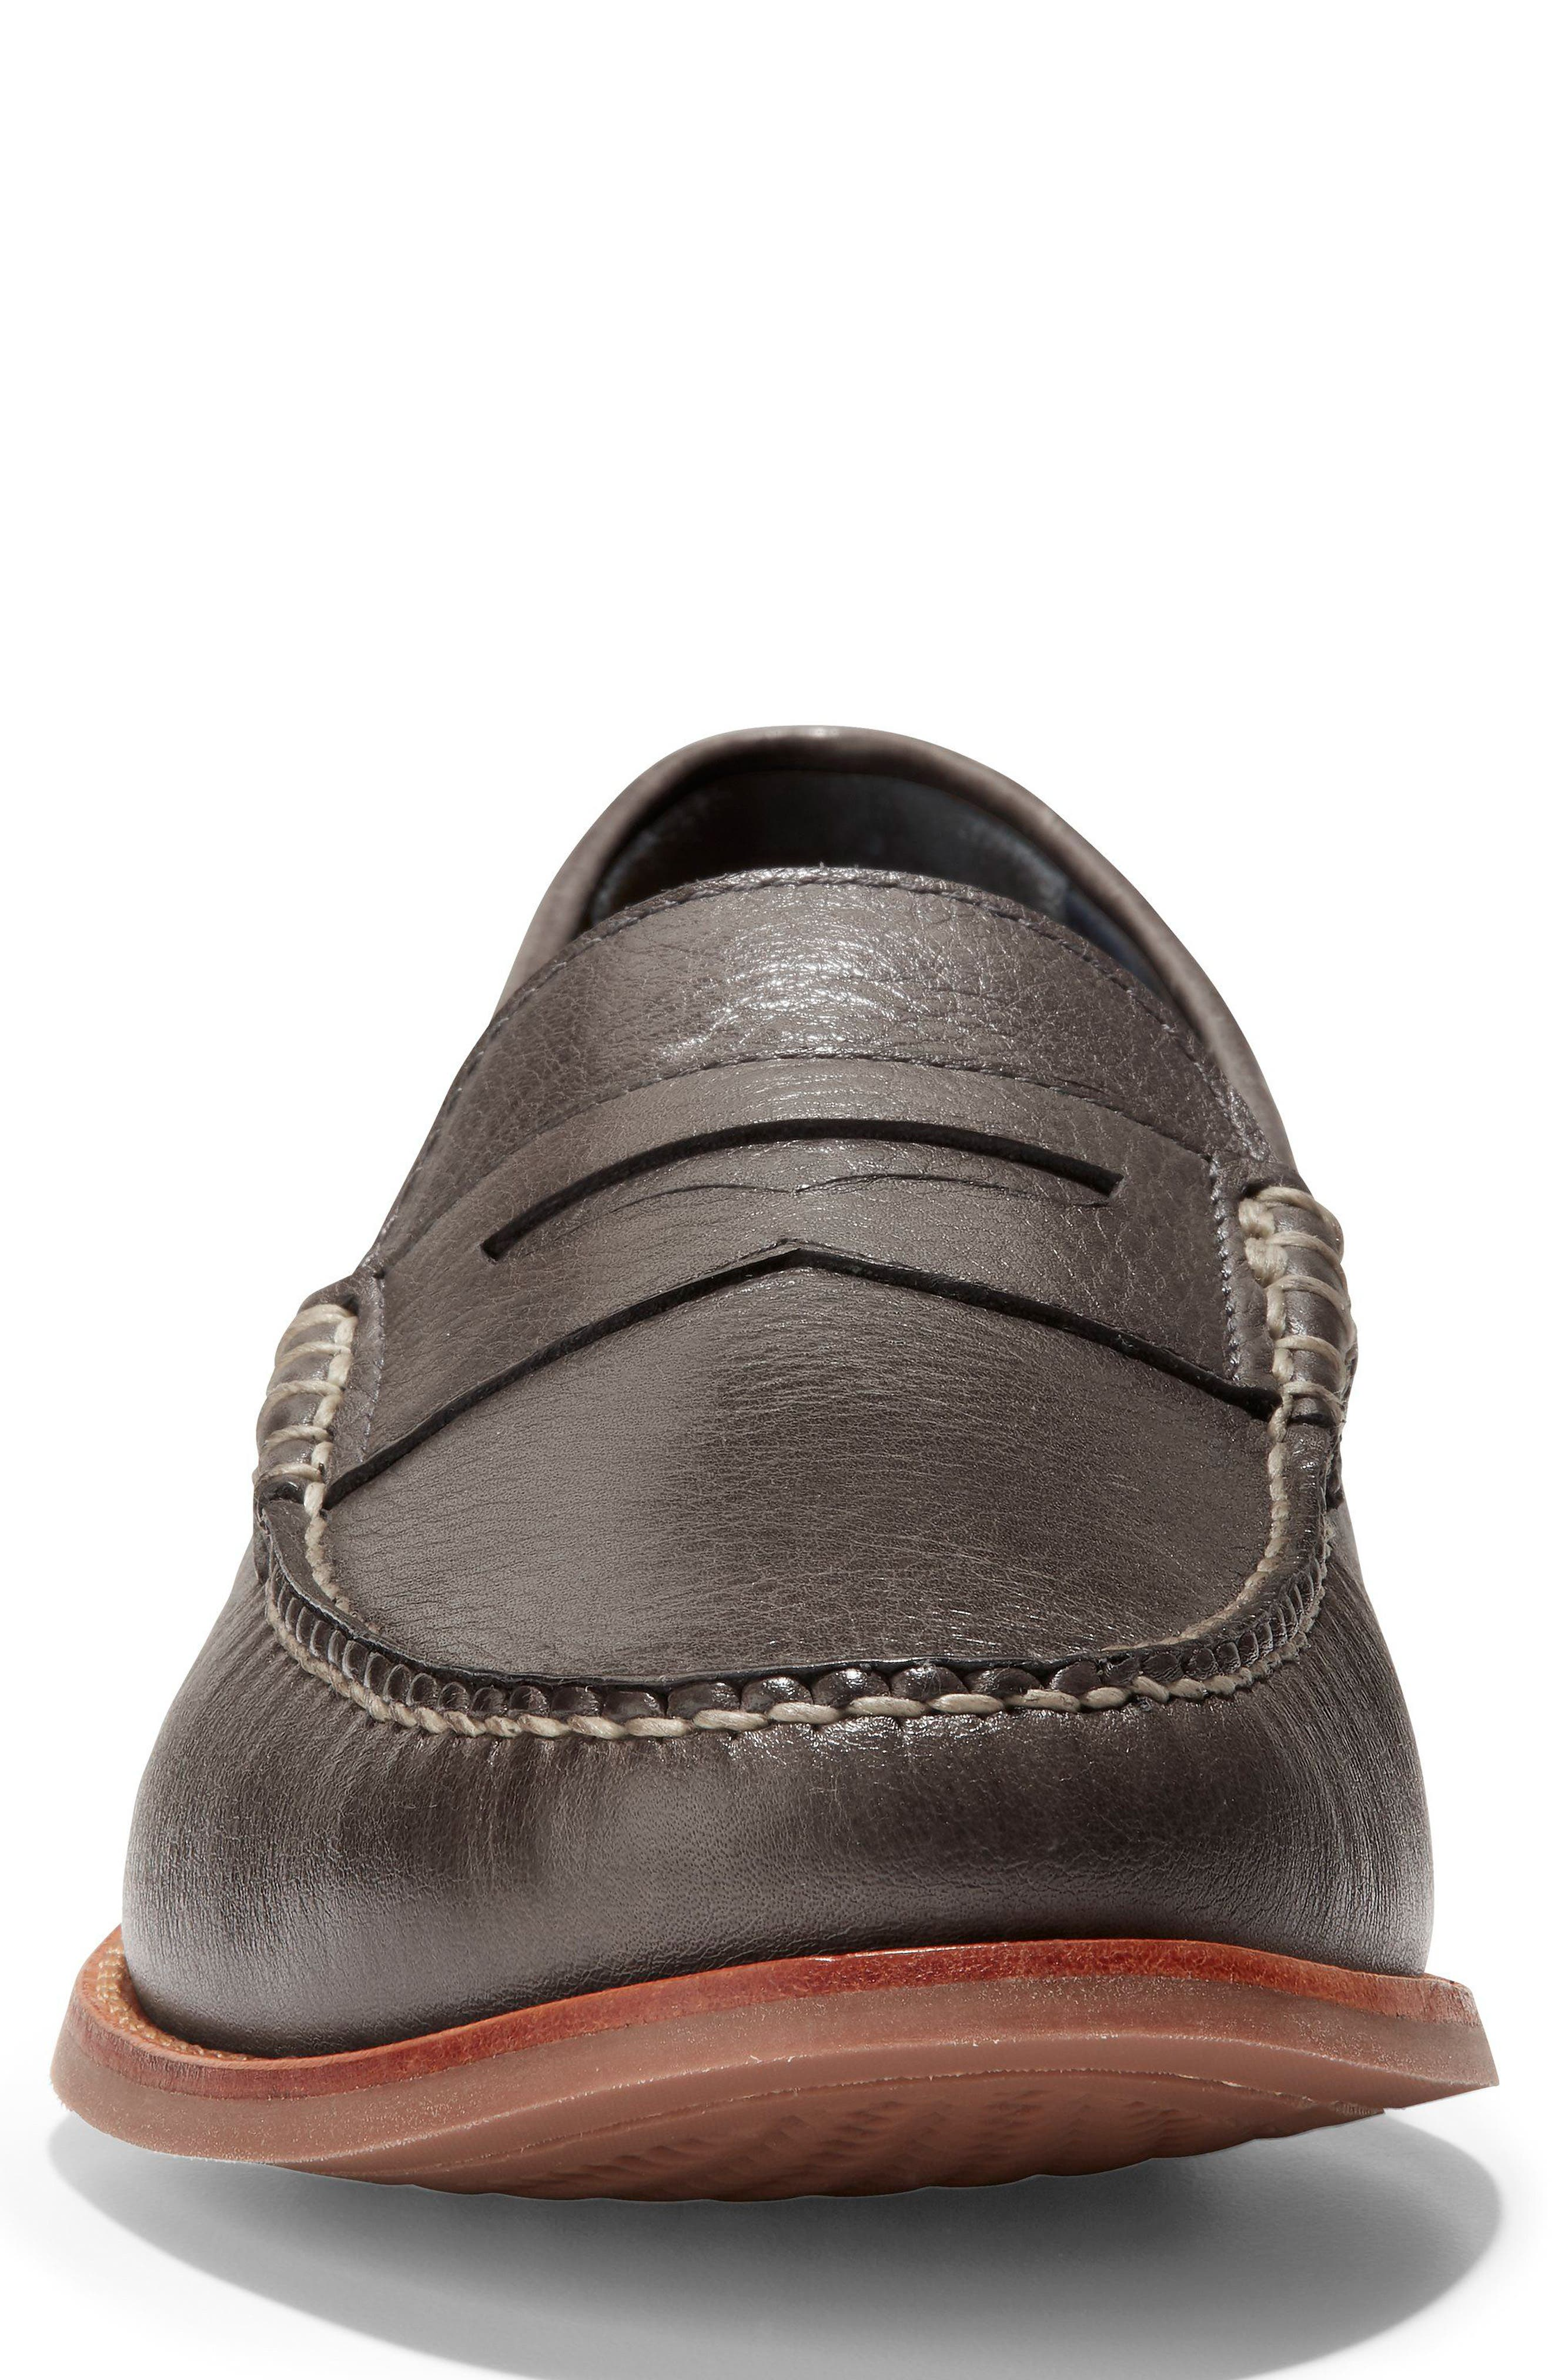 'Pinch Grand' Penny Loafer,                             Alternate thumbnail 4, color,                             021